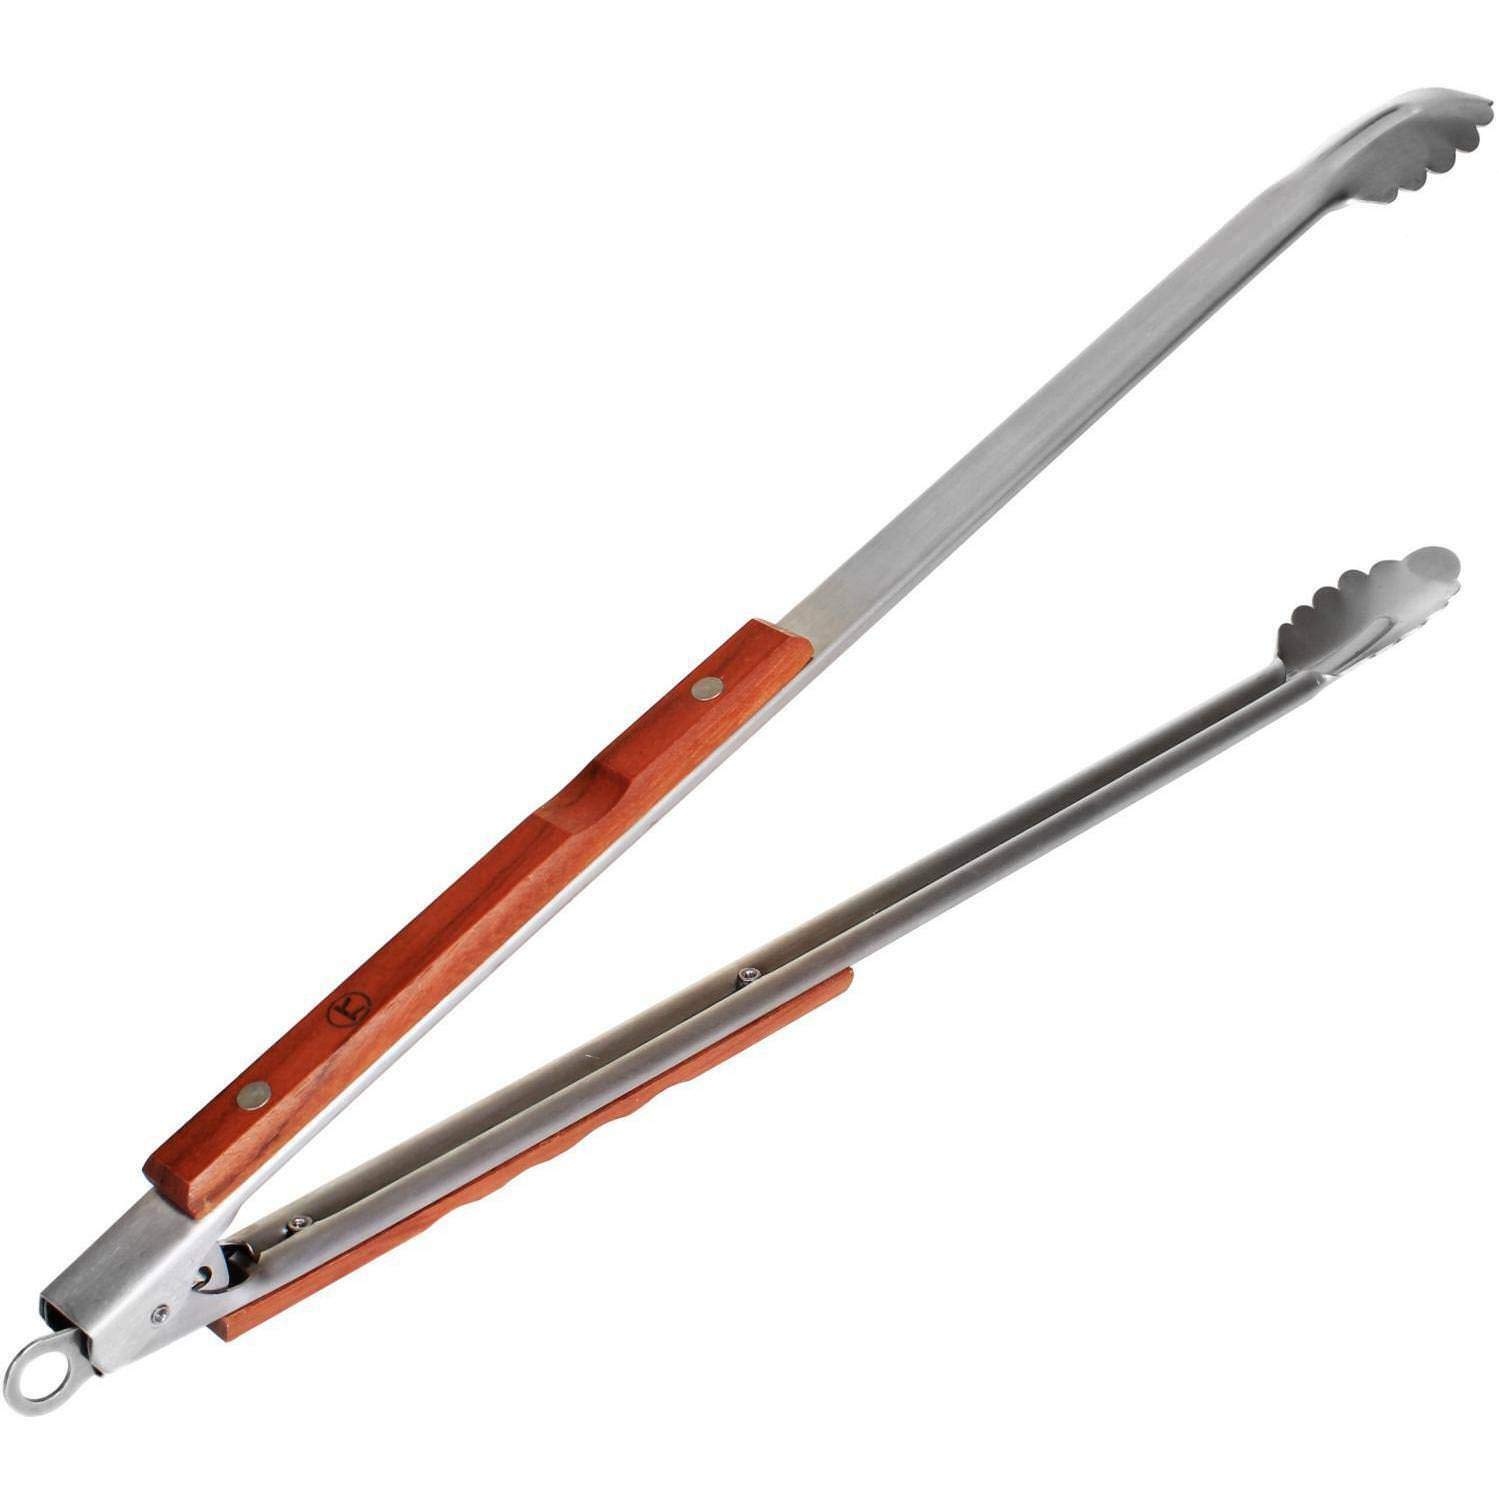 Akkapeary Outset Extra Long Stainless Steel Barbecue BBQ Tongs with Fine Rosewood Handles 21'' Silver Easy Storage Keeping The Griller Away from The Heat Practical Dependable Locking